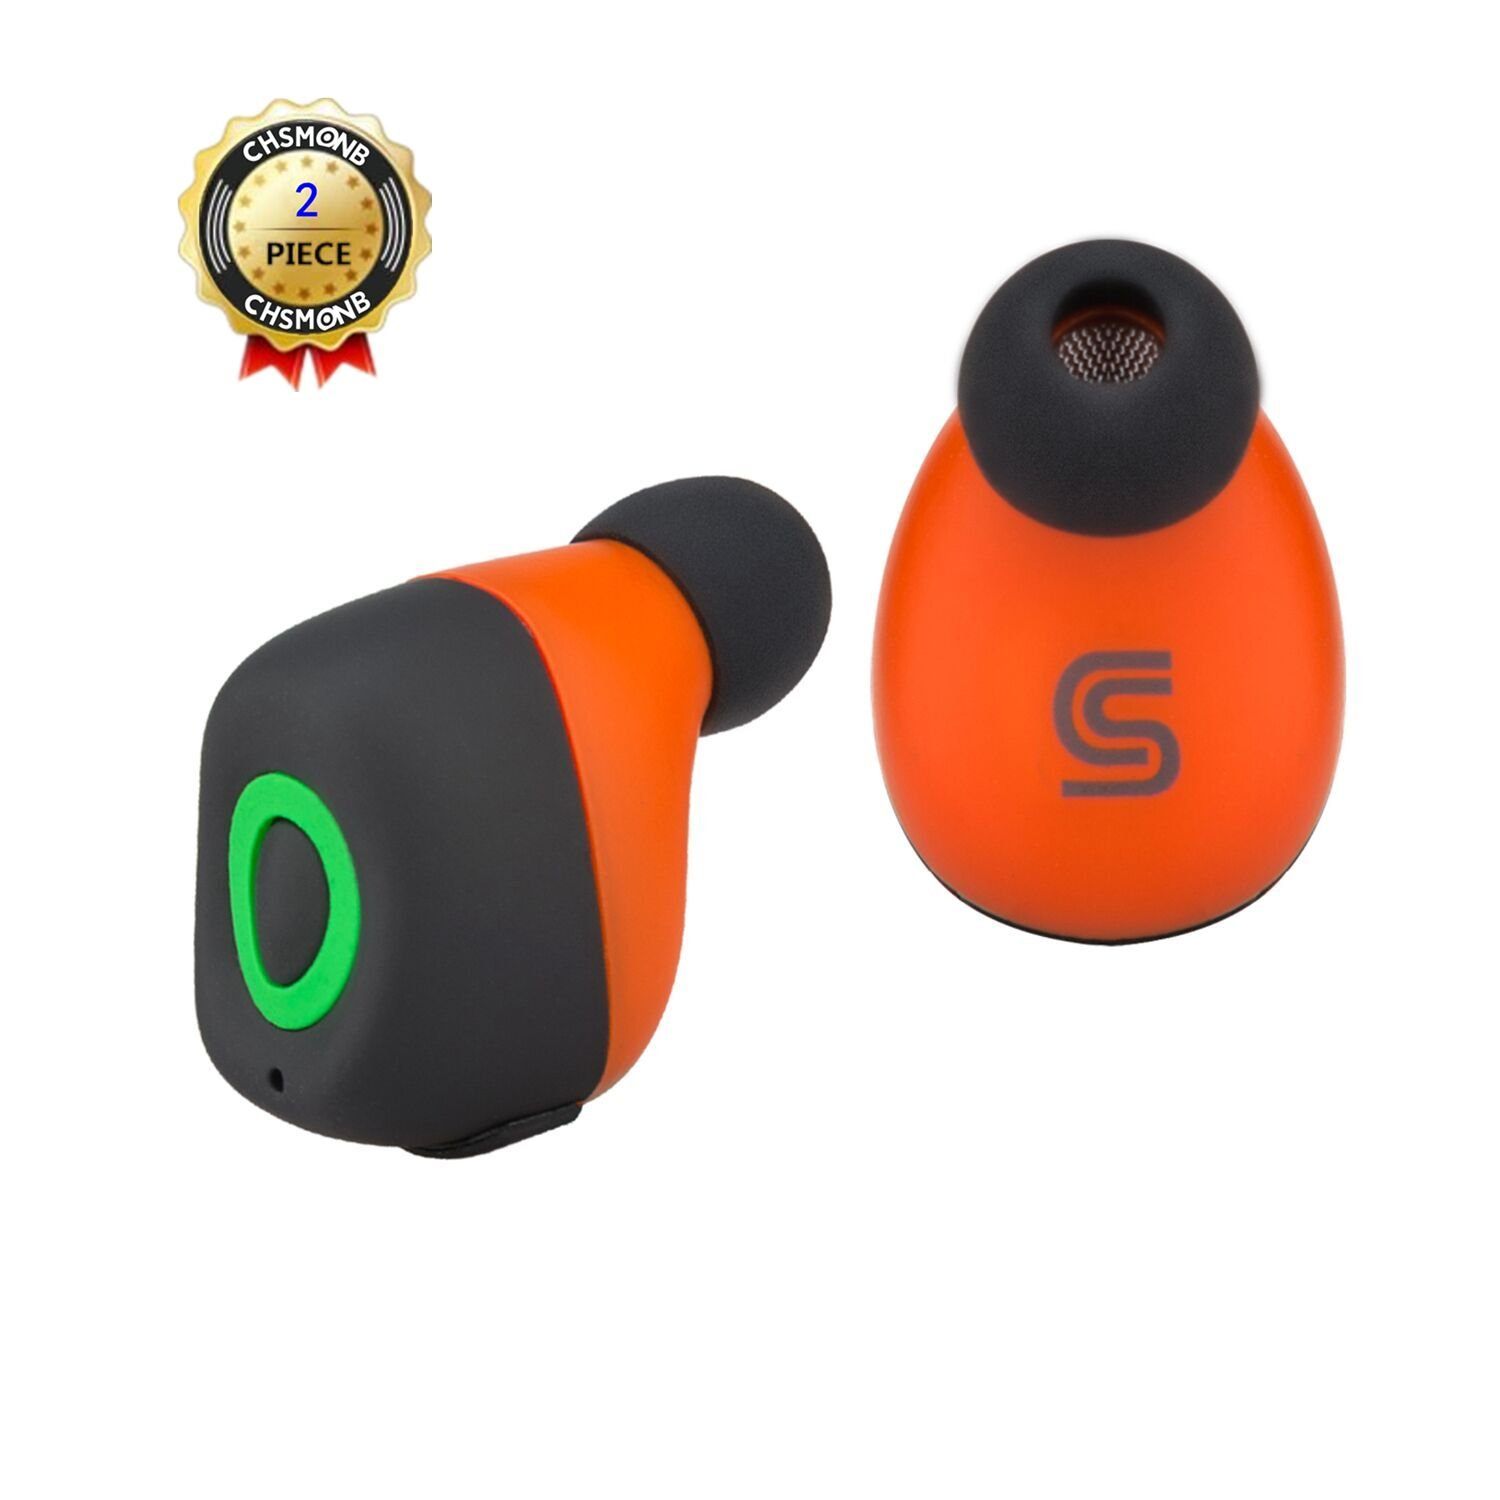 85%OFF Bluetooth Earbuds, CHSMONB True Wireless Earbuds Noise Isolation Stereo Wireless Earphones with Mic Dual In-ear Buds Wireless Bluetooth Headphones for Smart Phones and Other Bluetooth Devices(Black)